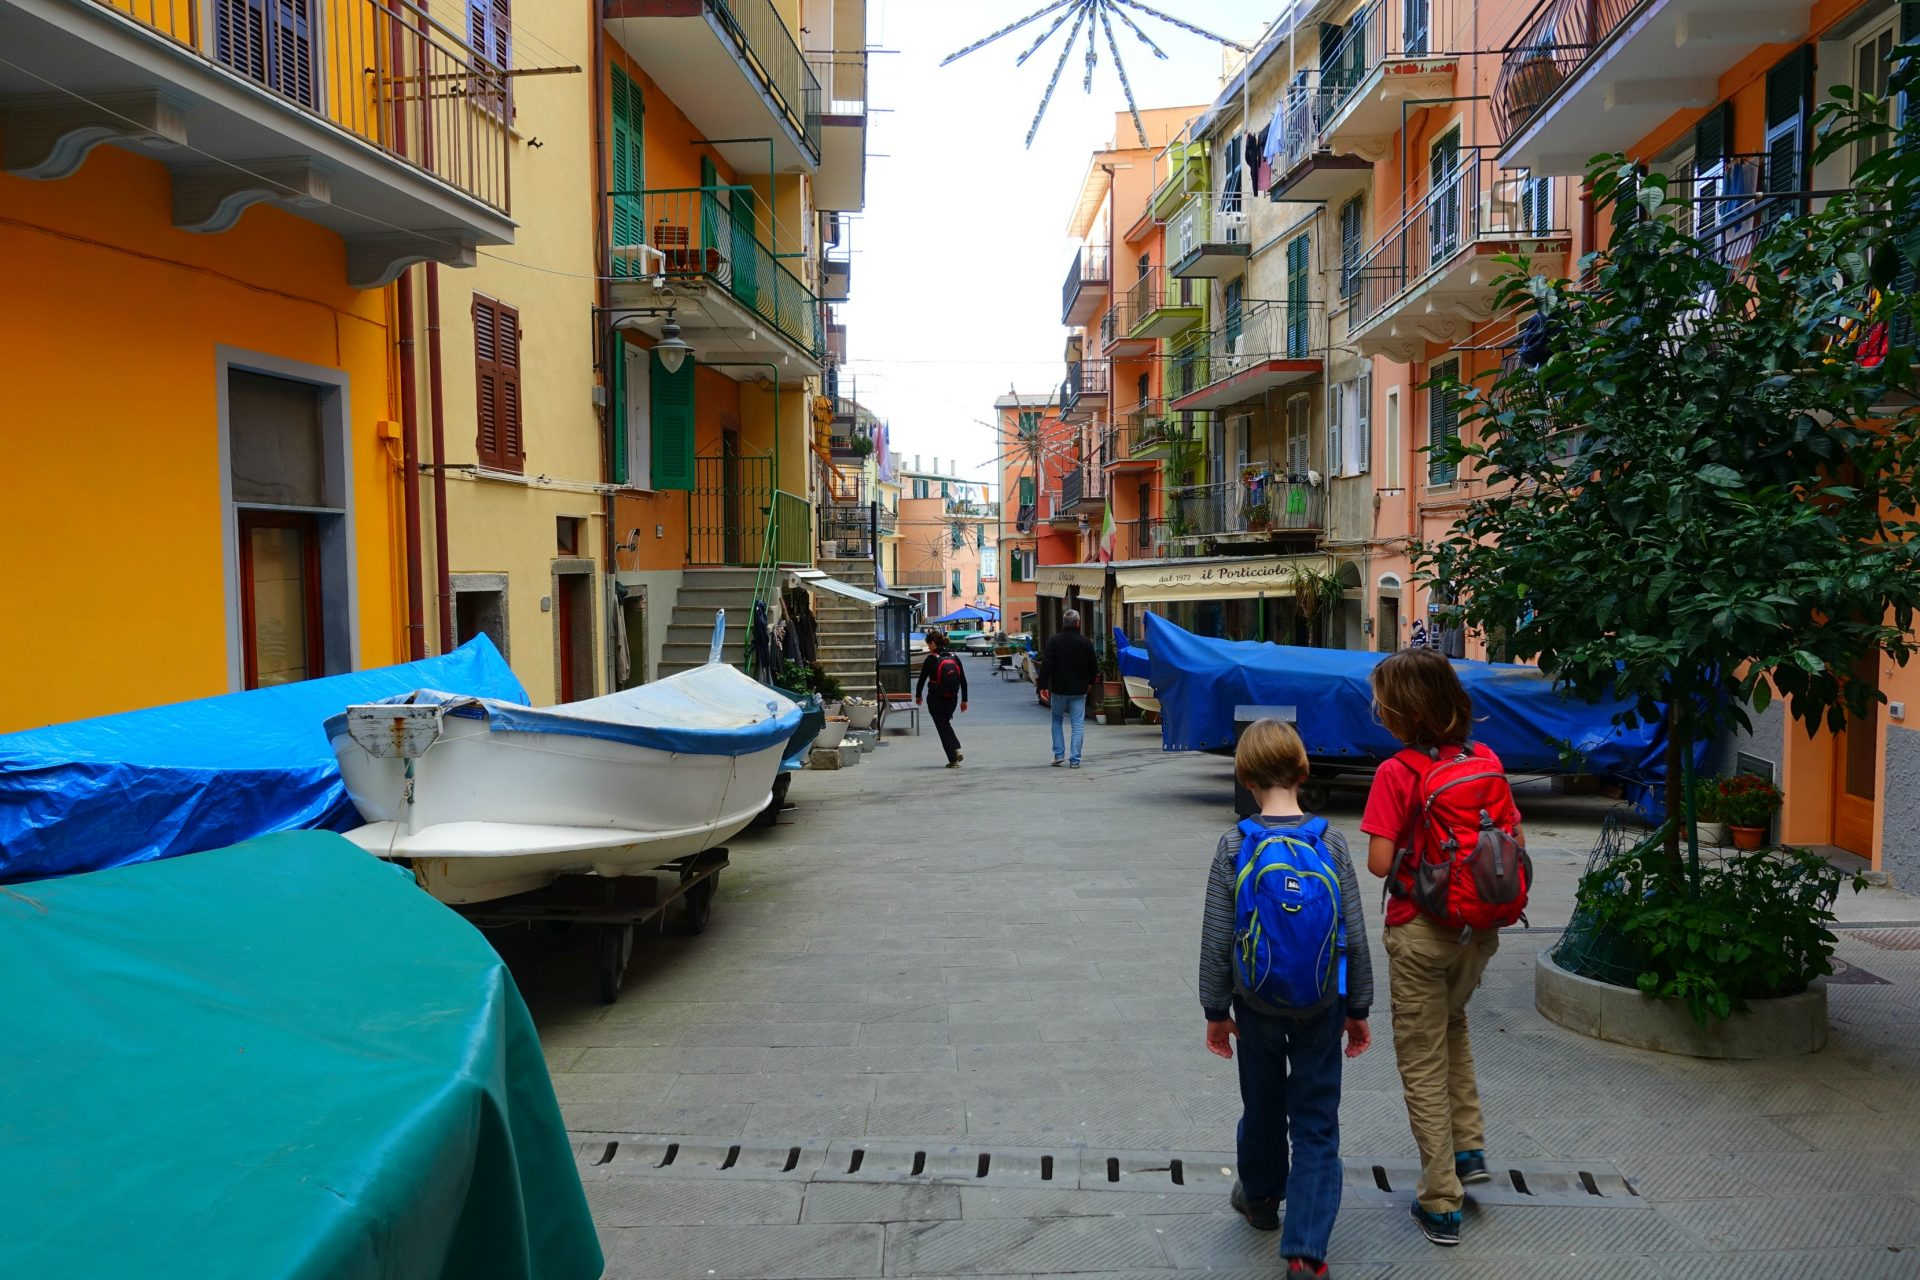 for accommodation cinque terre try booking.com